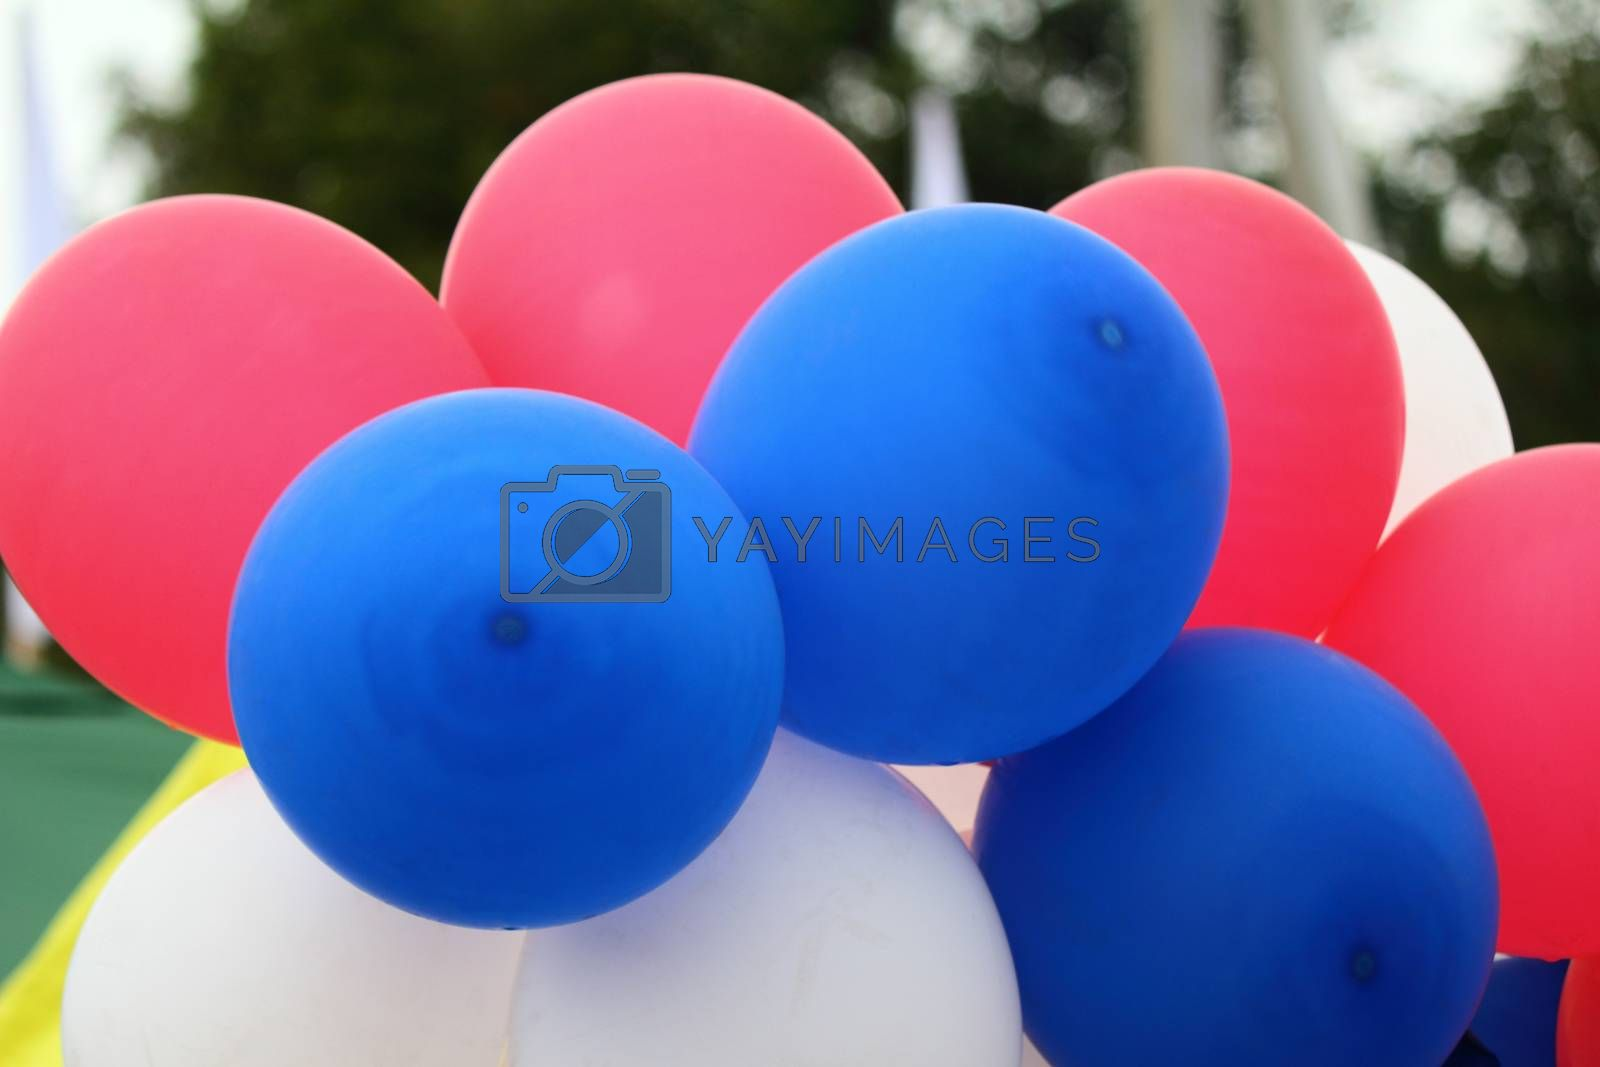 Beautiful, bright, red and blue air balloons, filled with gas and tied together.